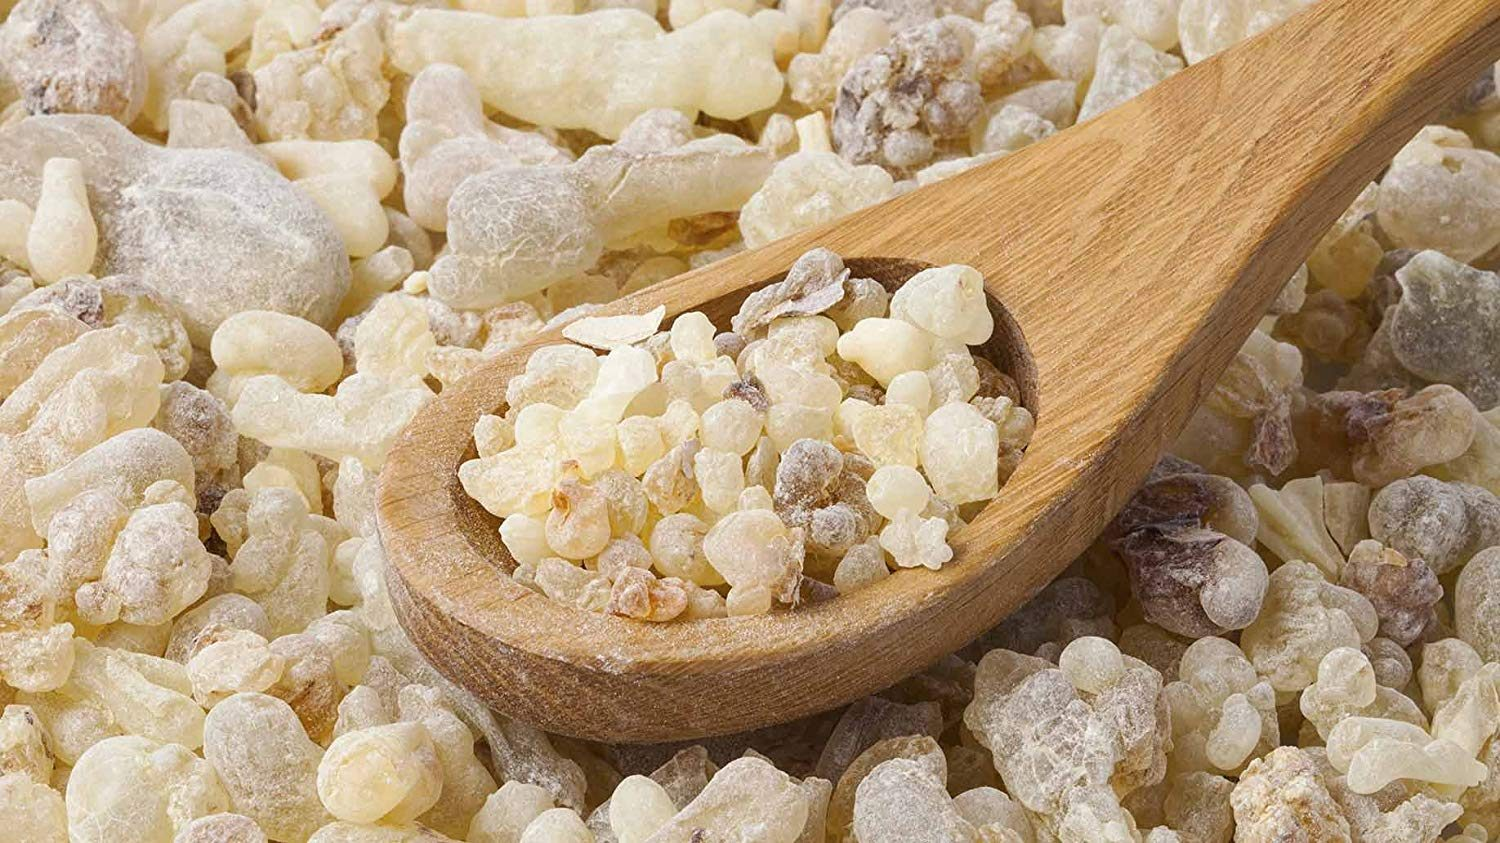 Frankincense in resin form